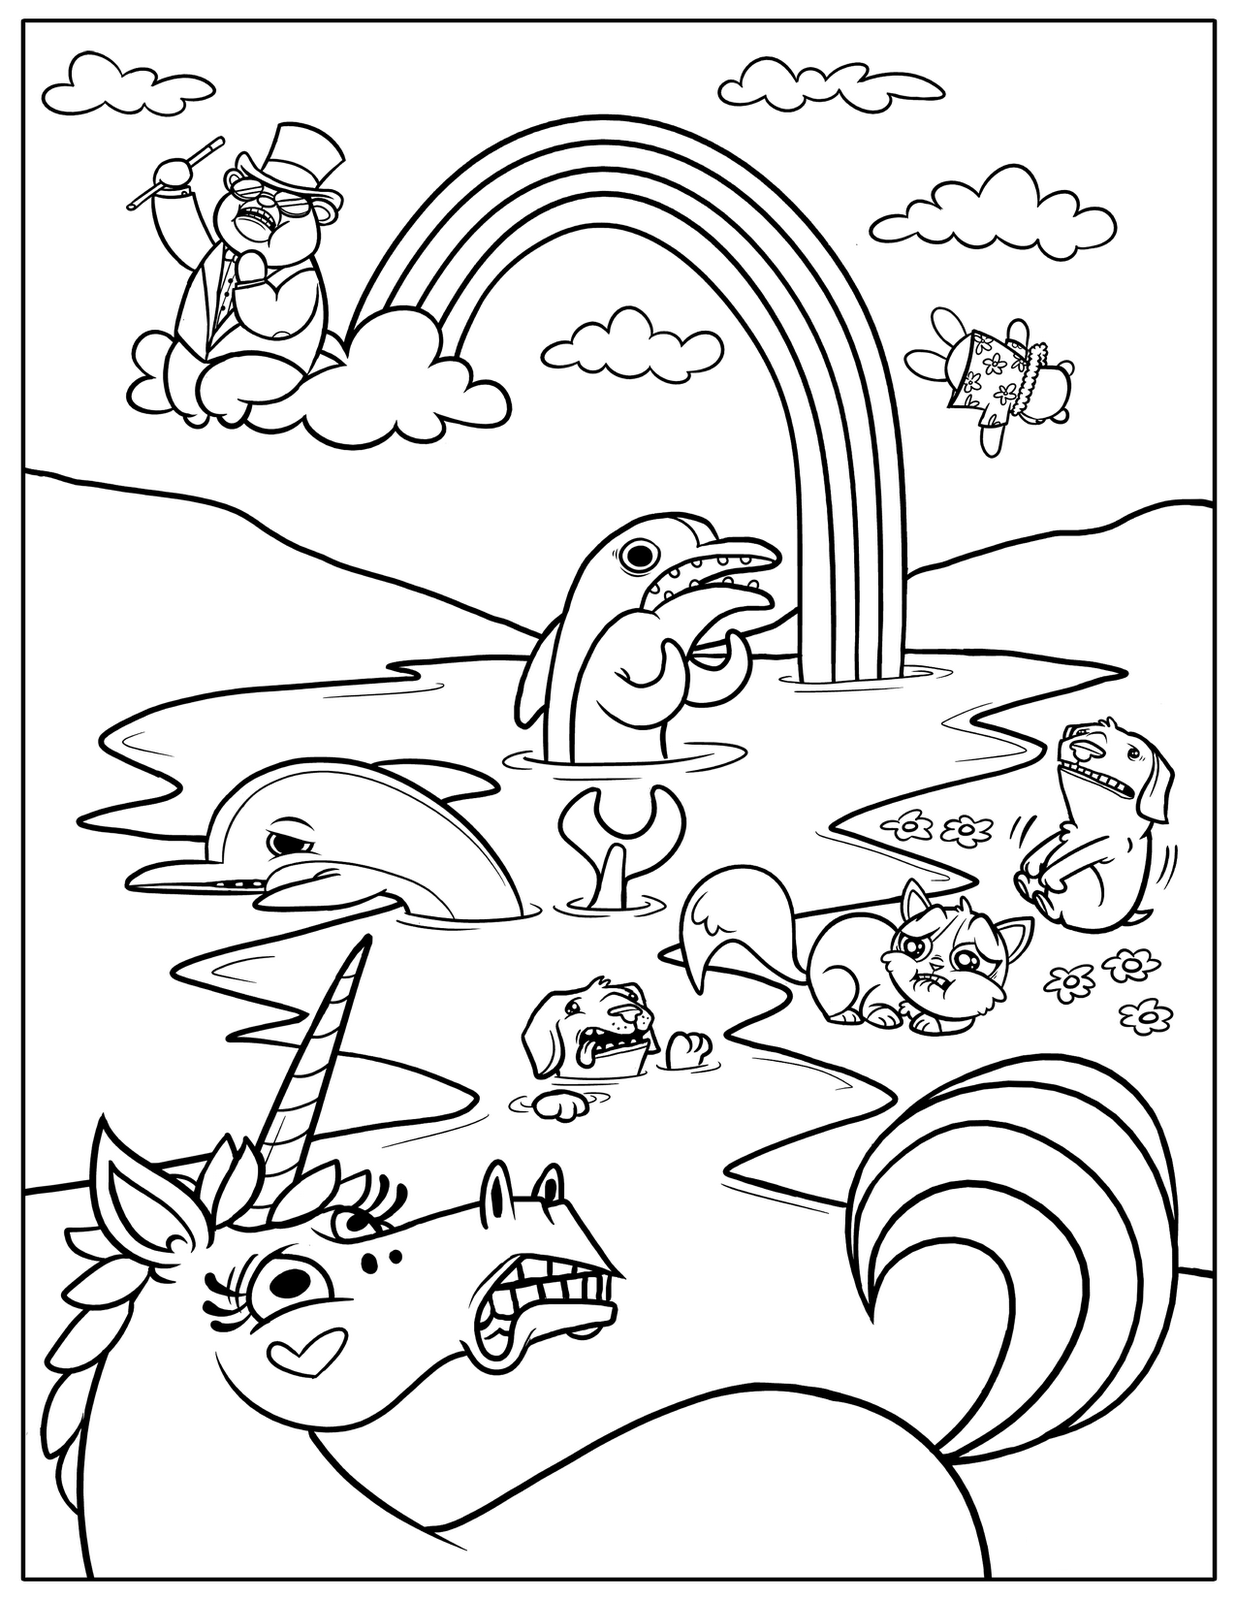 rainbow coloring pages kids printable - Colouring In Kids